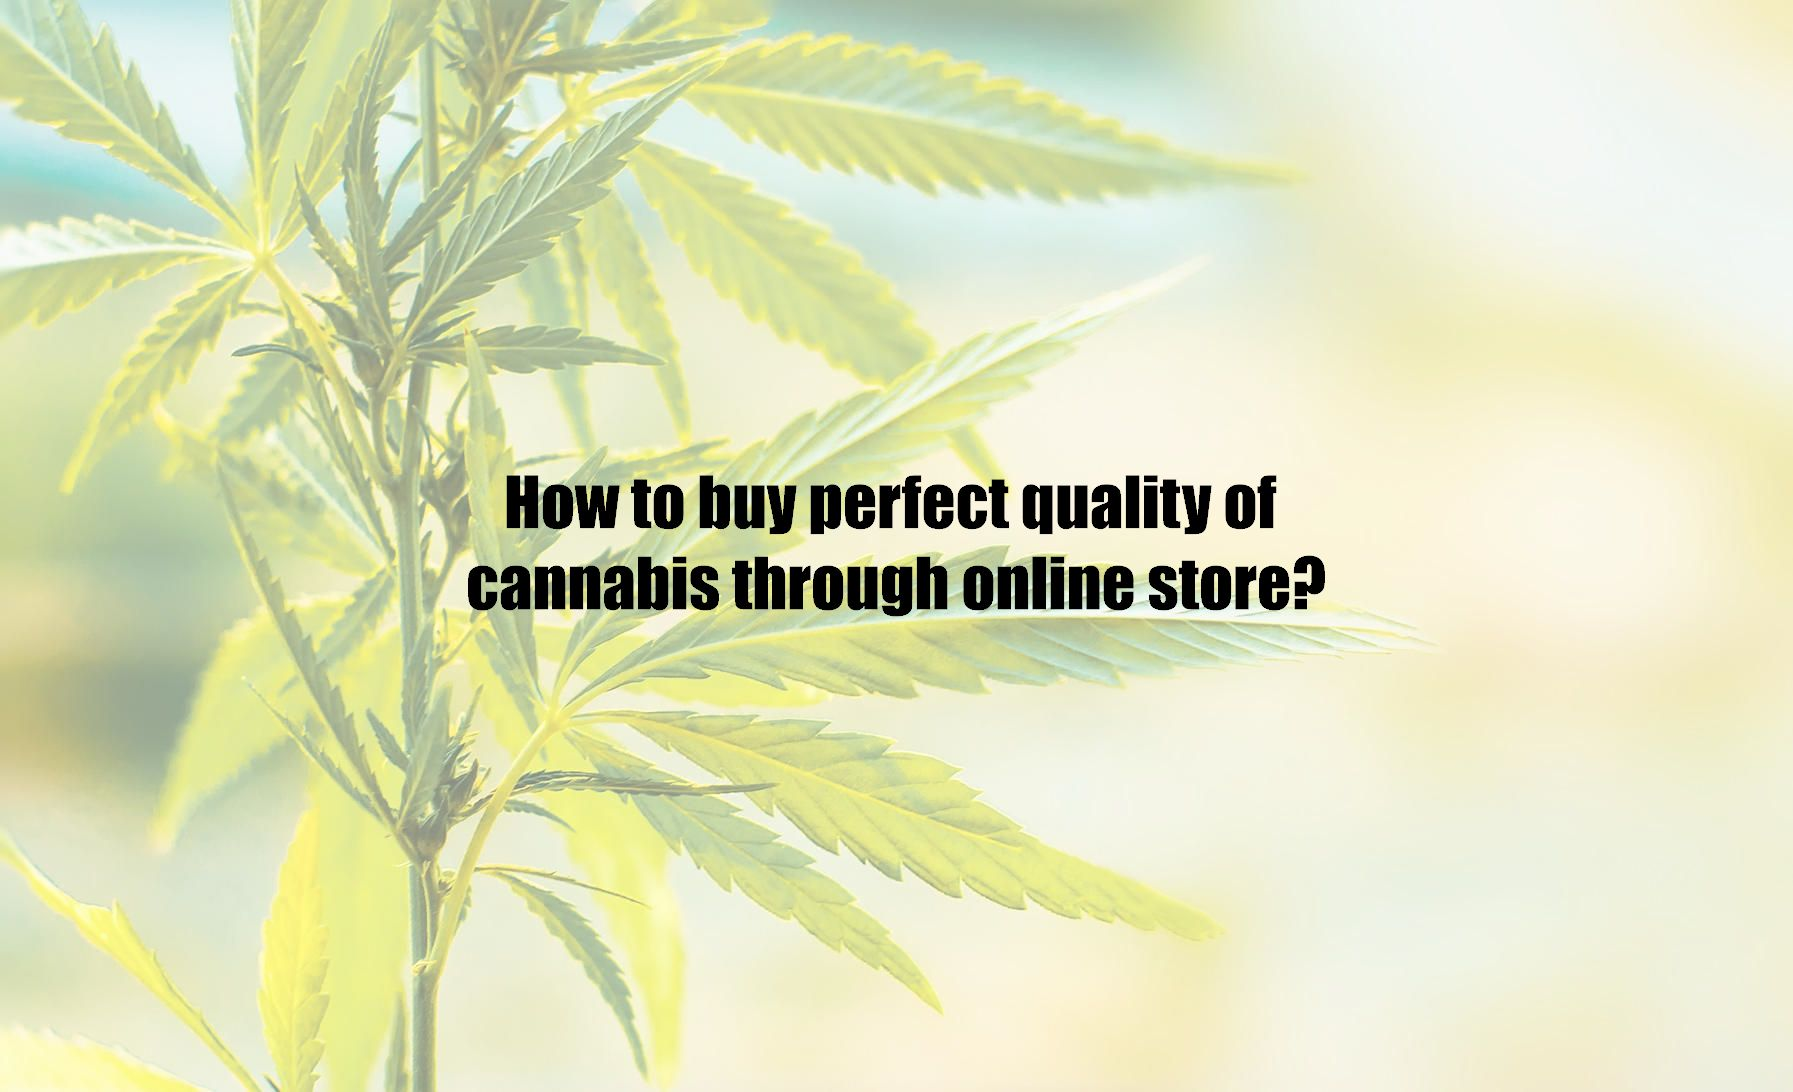 How to buy perfect quality of cannabis through online store?